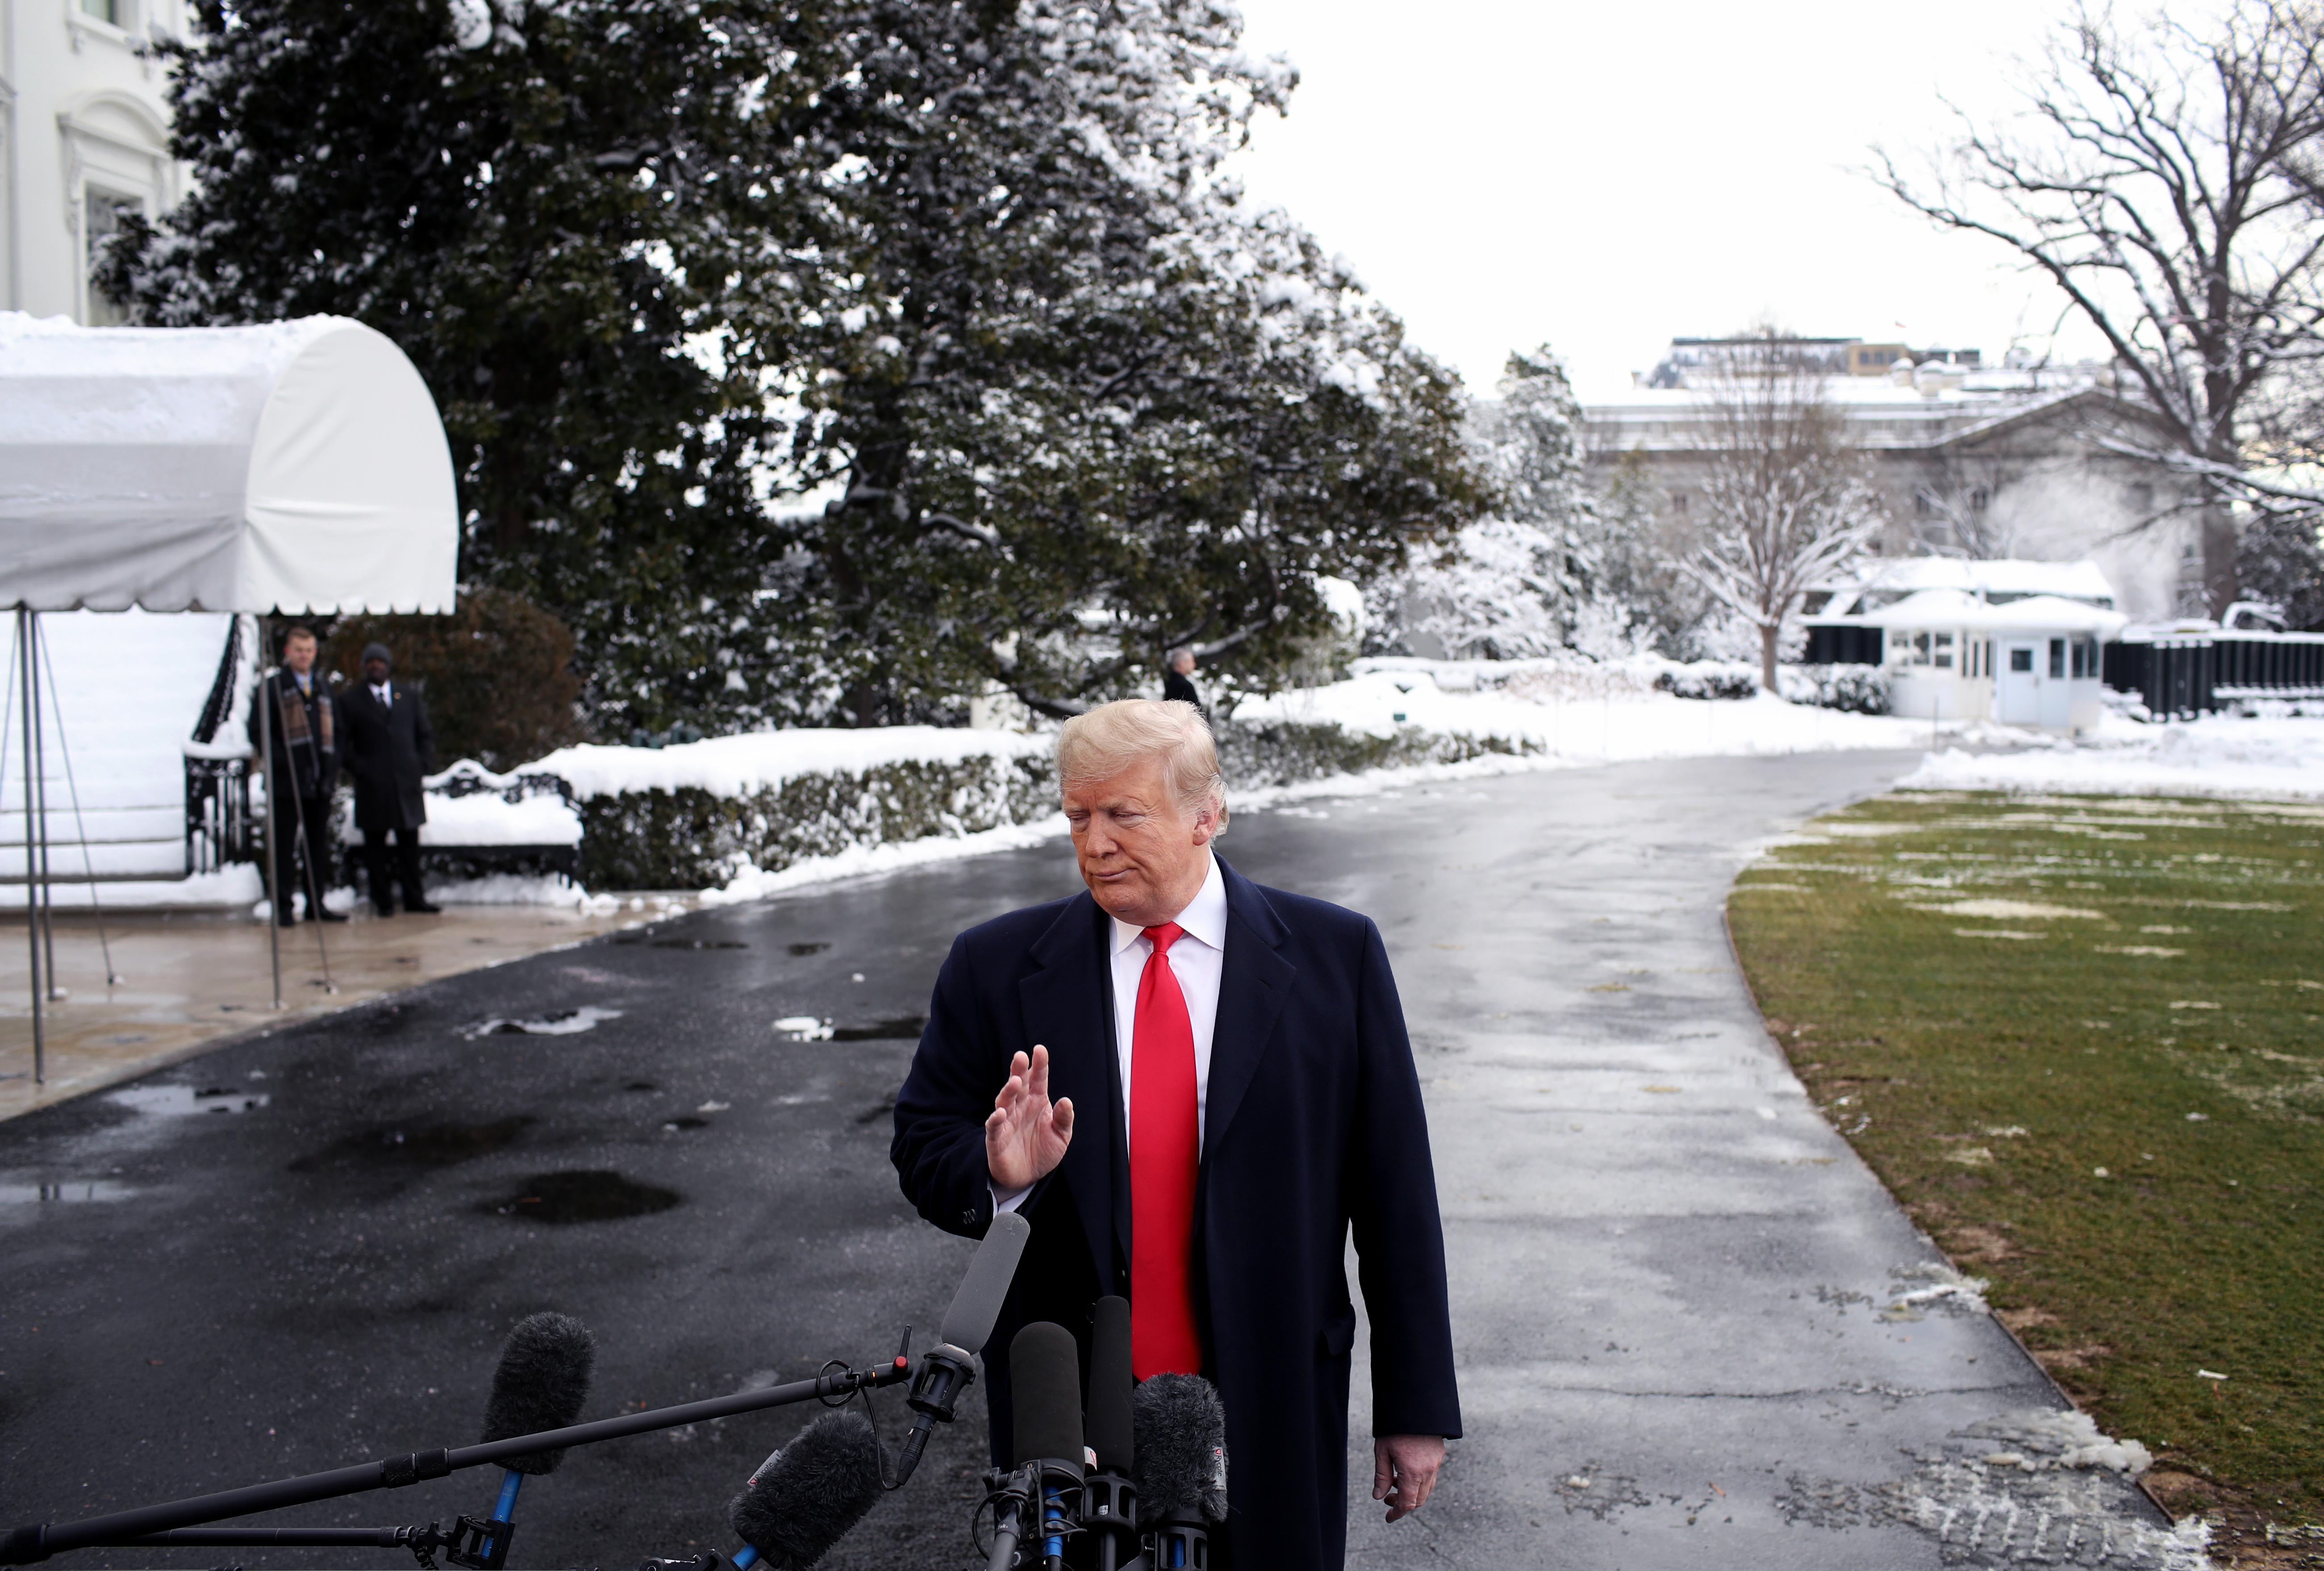 WASHINGTON, DC - JANUARY 14: U.S. President Donald Trump answers questions from the press as he departs the White House January 14, 2019 in Washington, DC. Trump is scheduled to travel to New Orleans today to address the American Farm Bureau Federation's 100th annual convention. (Photo by Win McNamee/Getty Images)